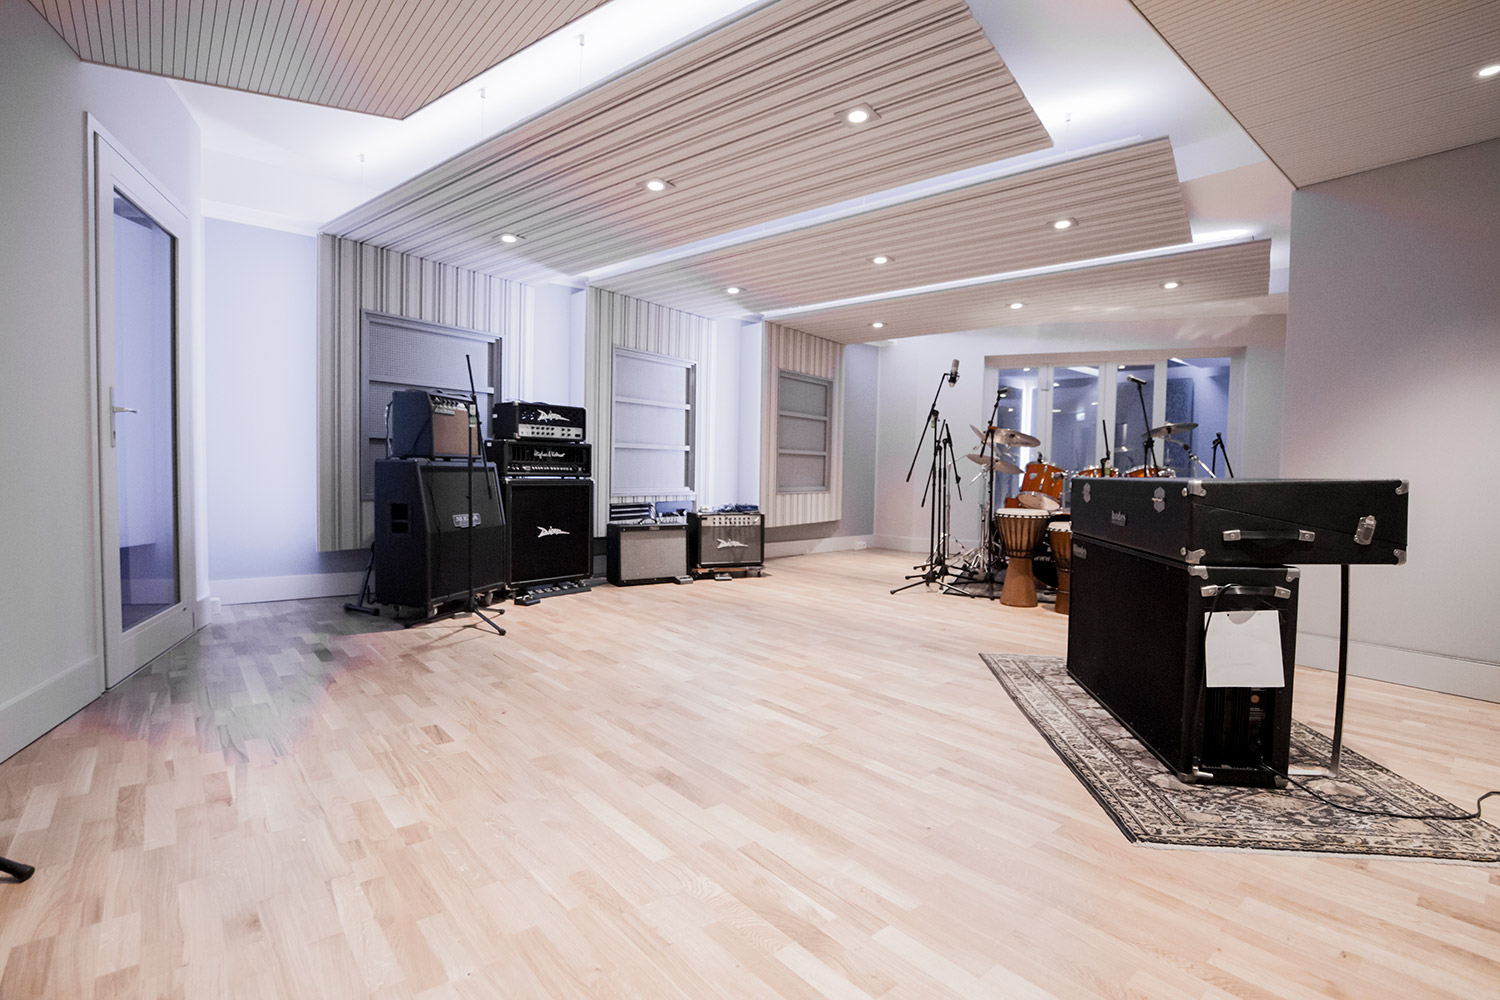 Vienna City Sound is a twelve-room recording studio built in the basement of a vintage commercial building in the heart of Vienna. Owner Peter Zimmerl's retained the services of WSDG to design his dream studio. Live room wide photo.